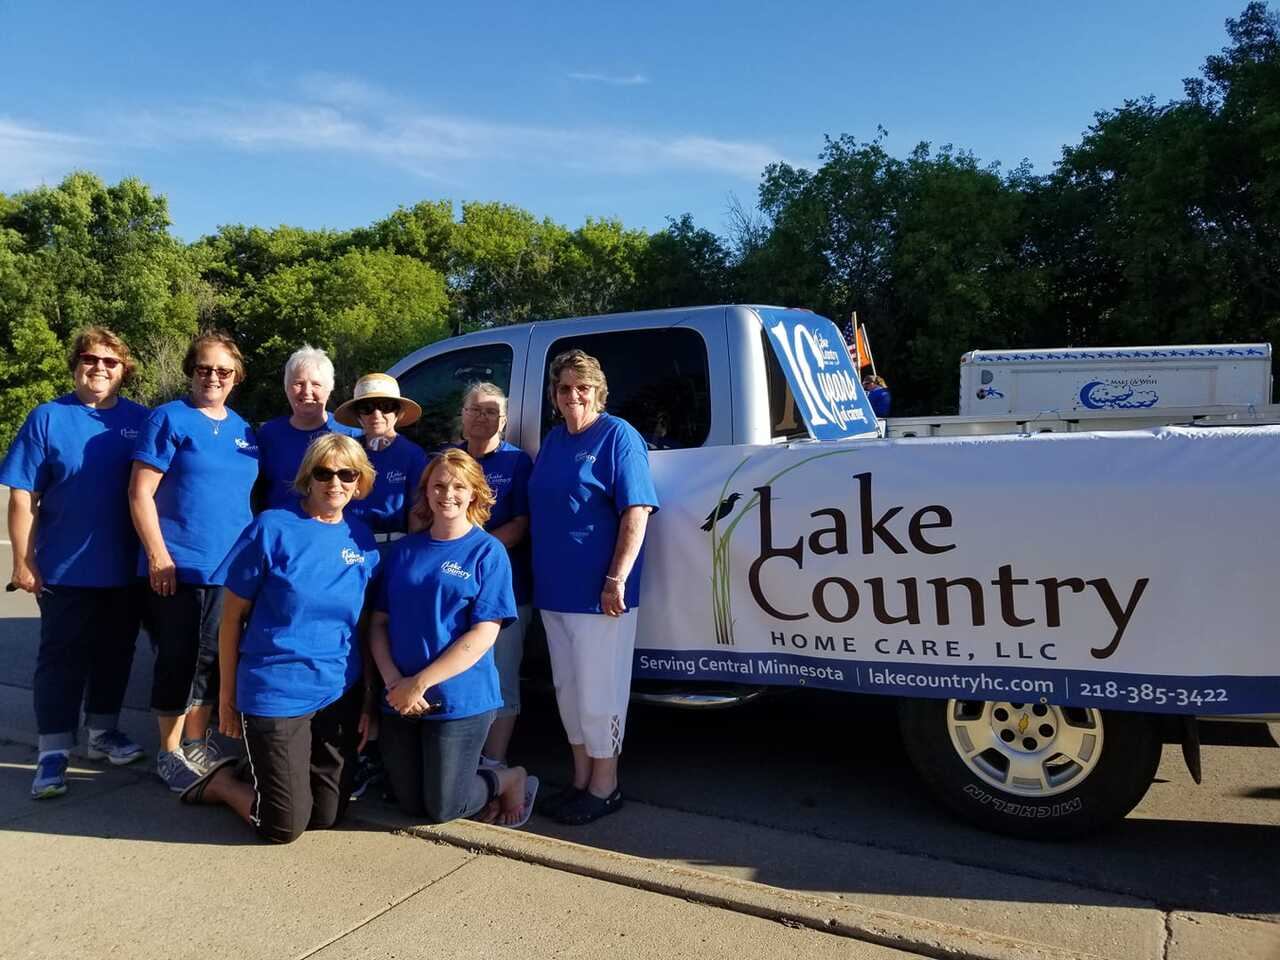 Lake Country Home Care LLC - Medical - In-Home Care in New York Mills  MN